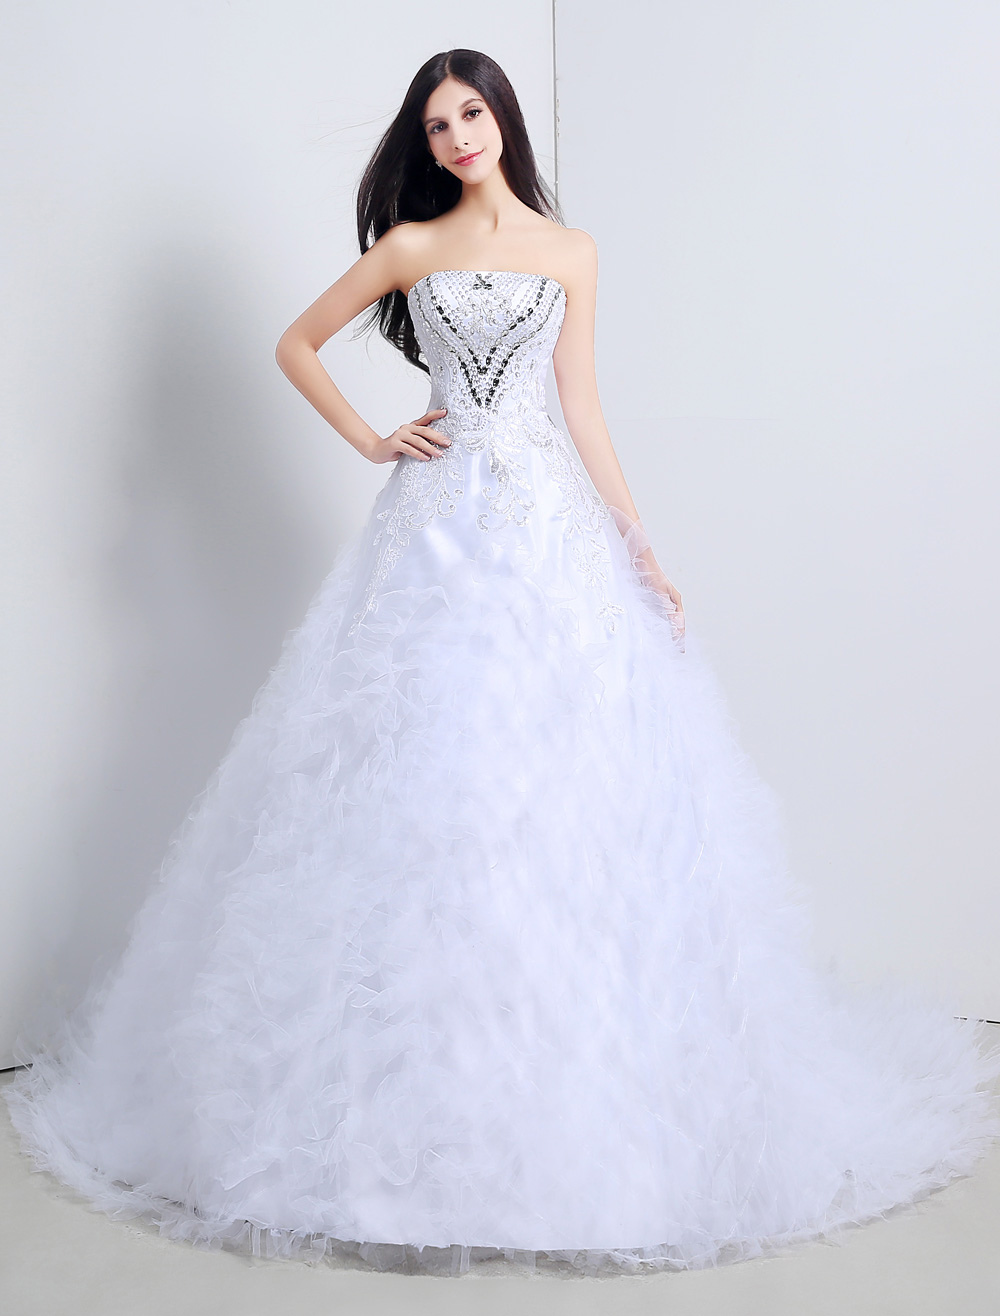 Satin Strapless Crystal Beaded Cathedral Train Wedding Dress With Ruffles